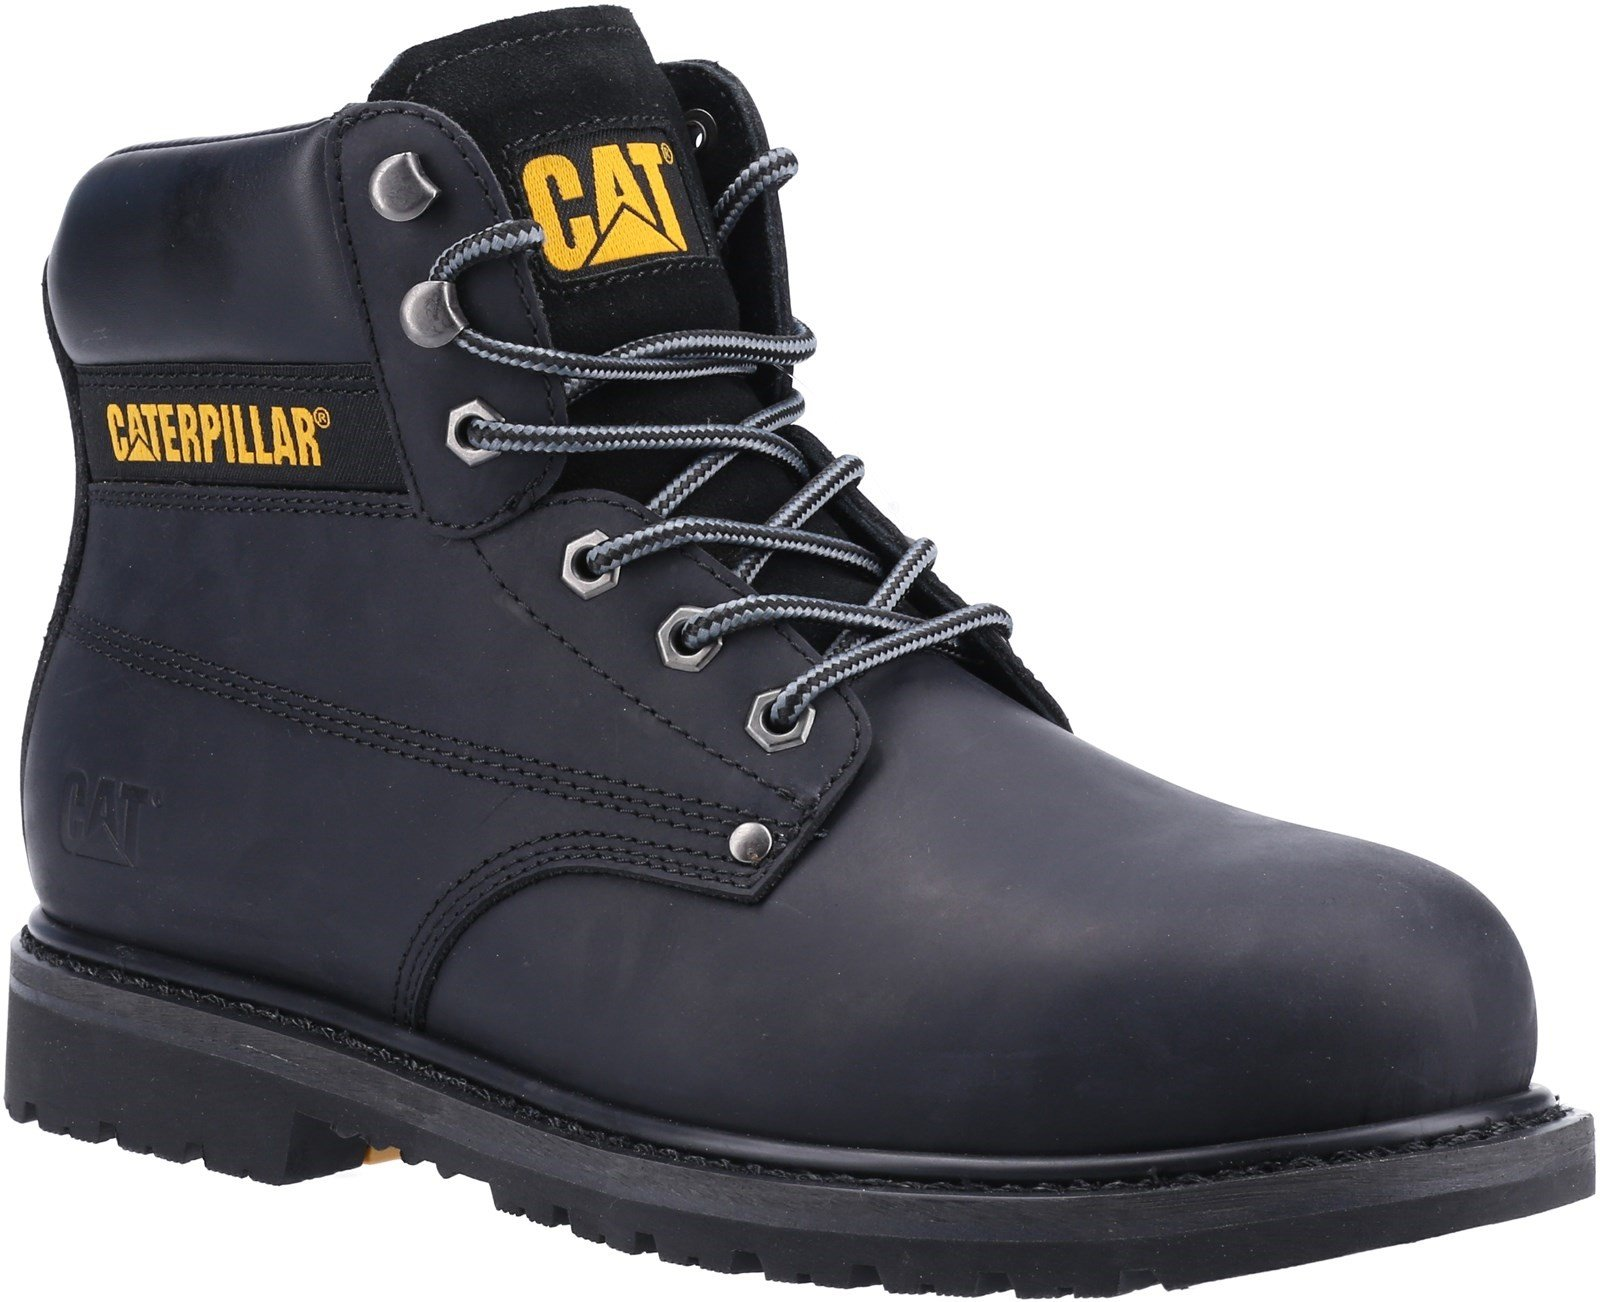 Caterpillar Unisex Powerplant S3 GYW Safety Boot Various Colours 32630 - Black 6